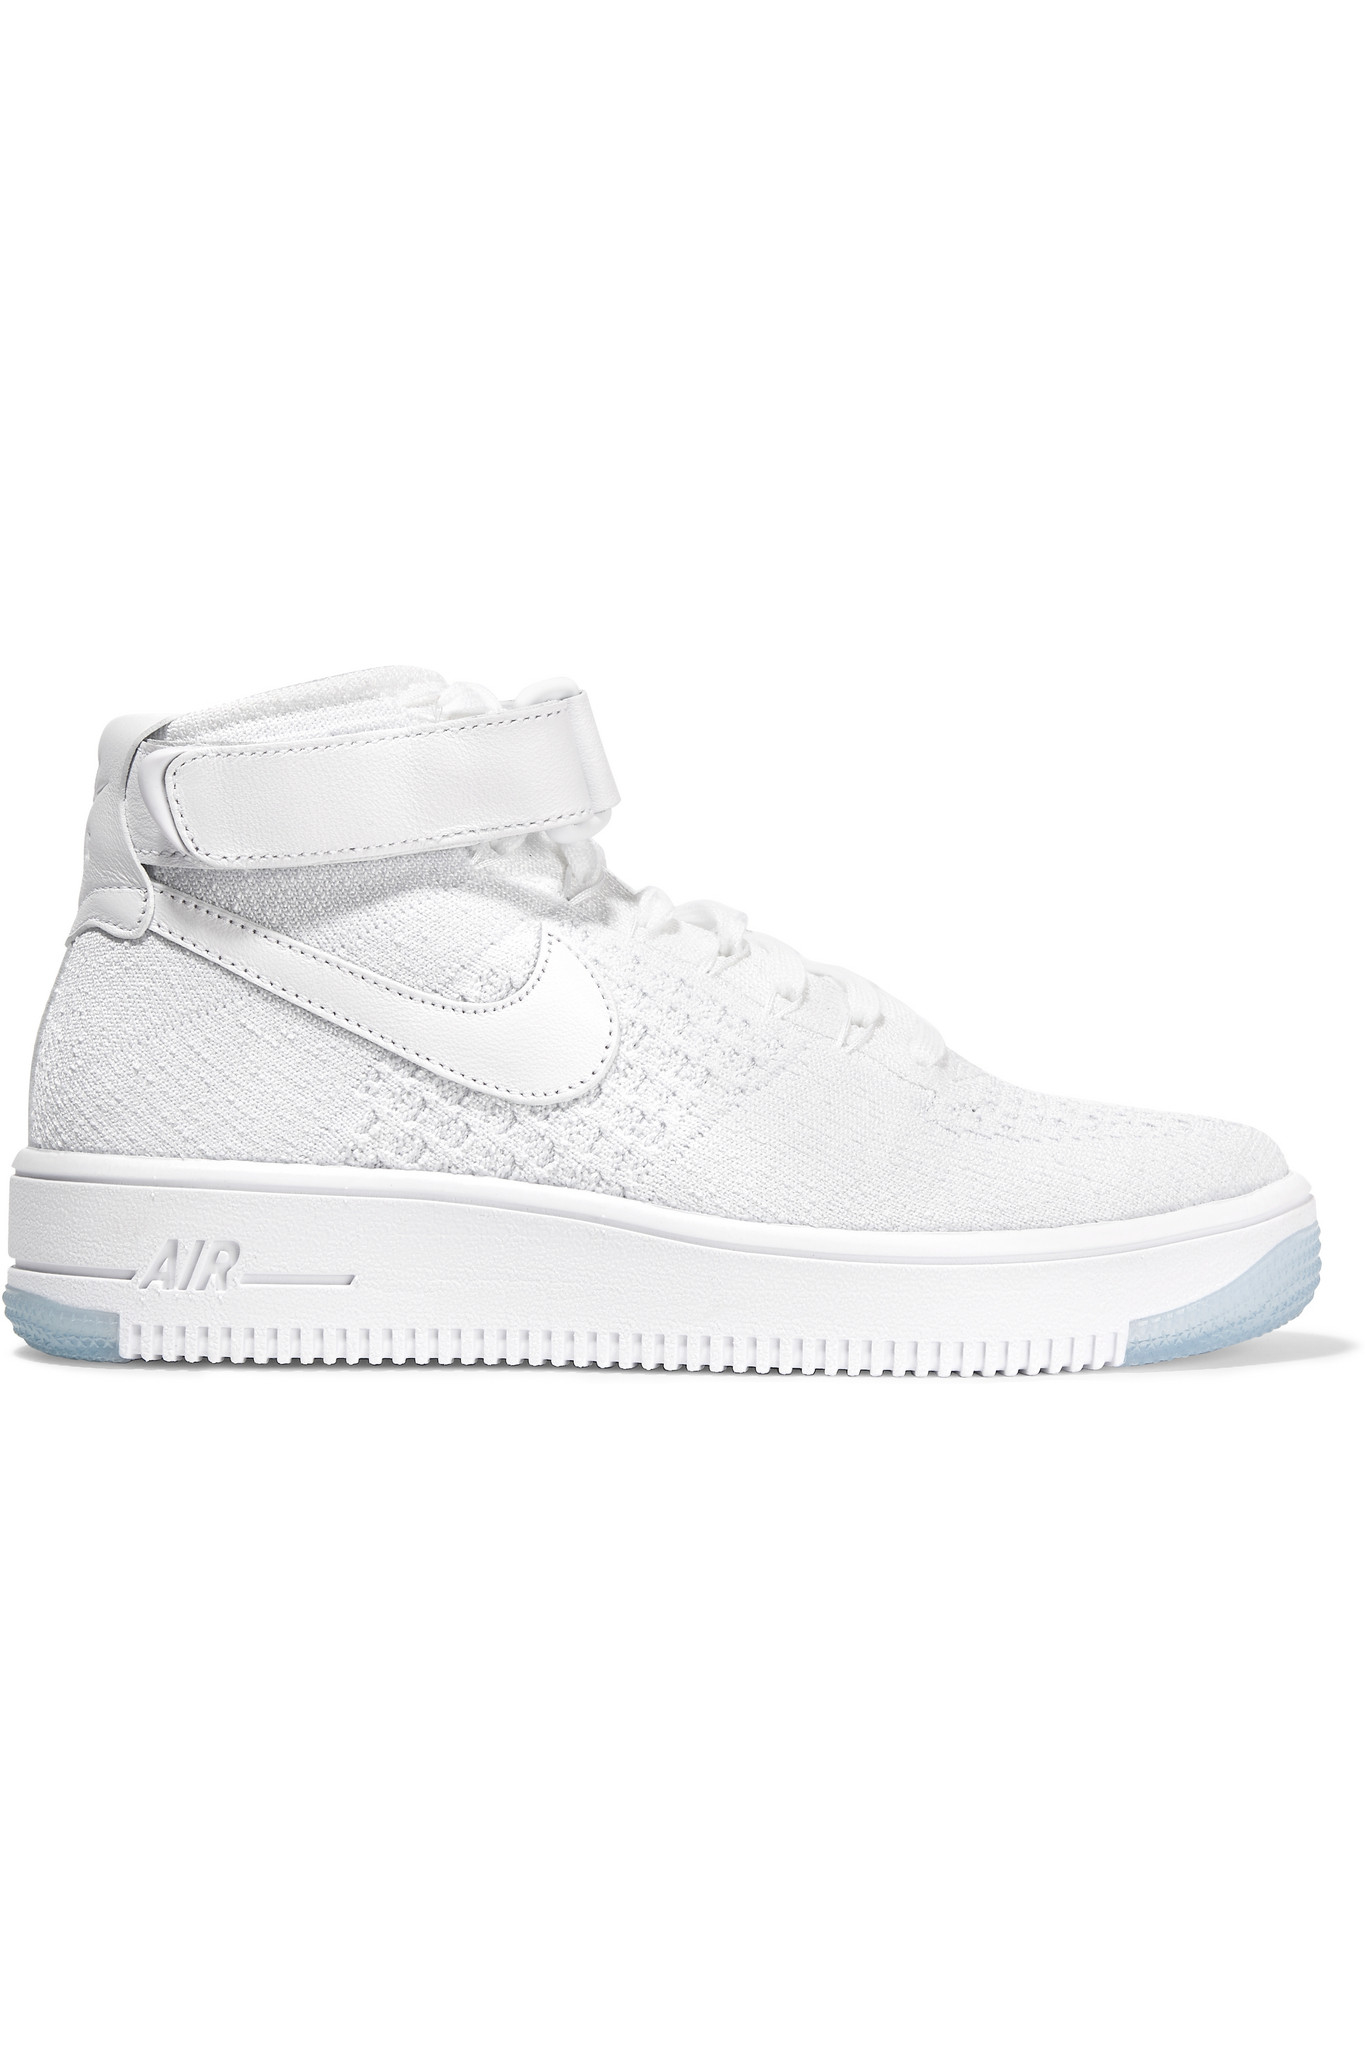 Nike Air Force 1 Flyknit Mesh And Textured-leather Sneakers in ...